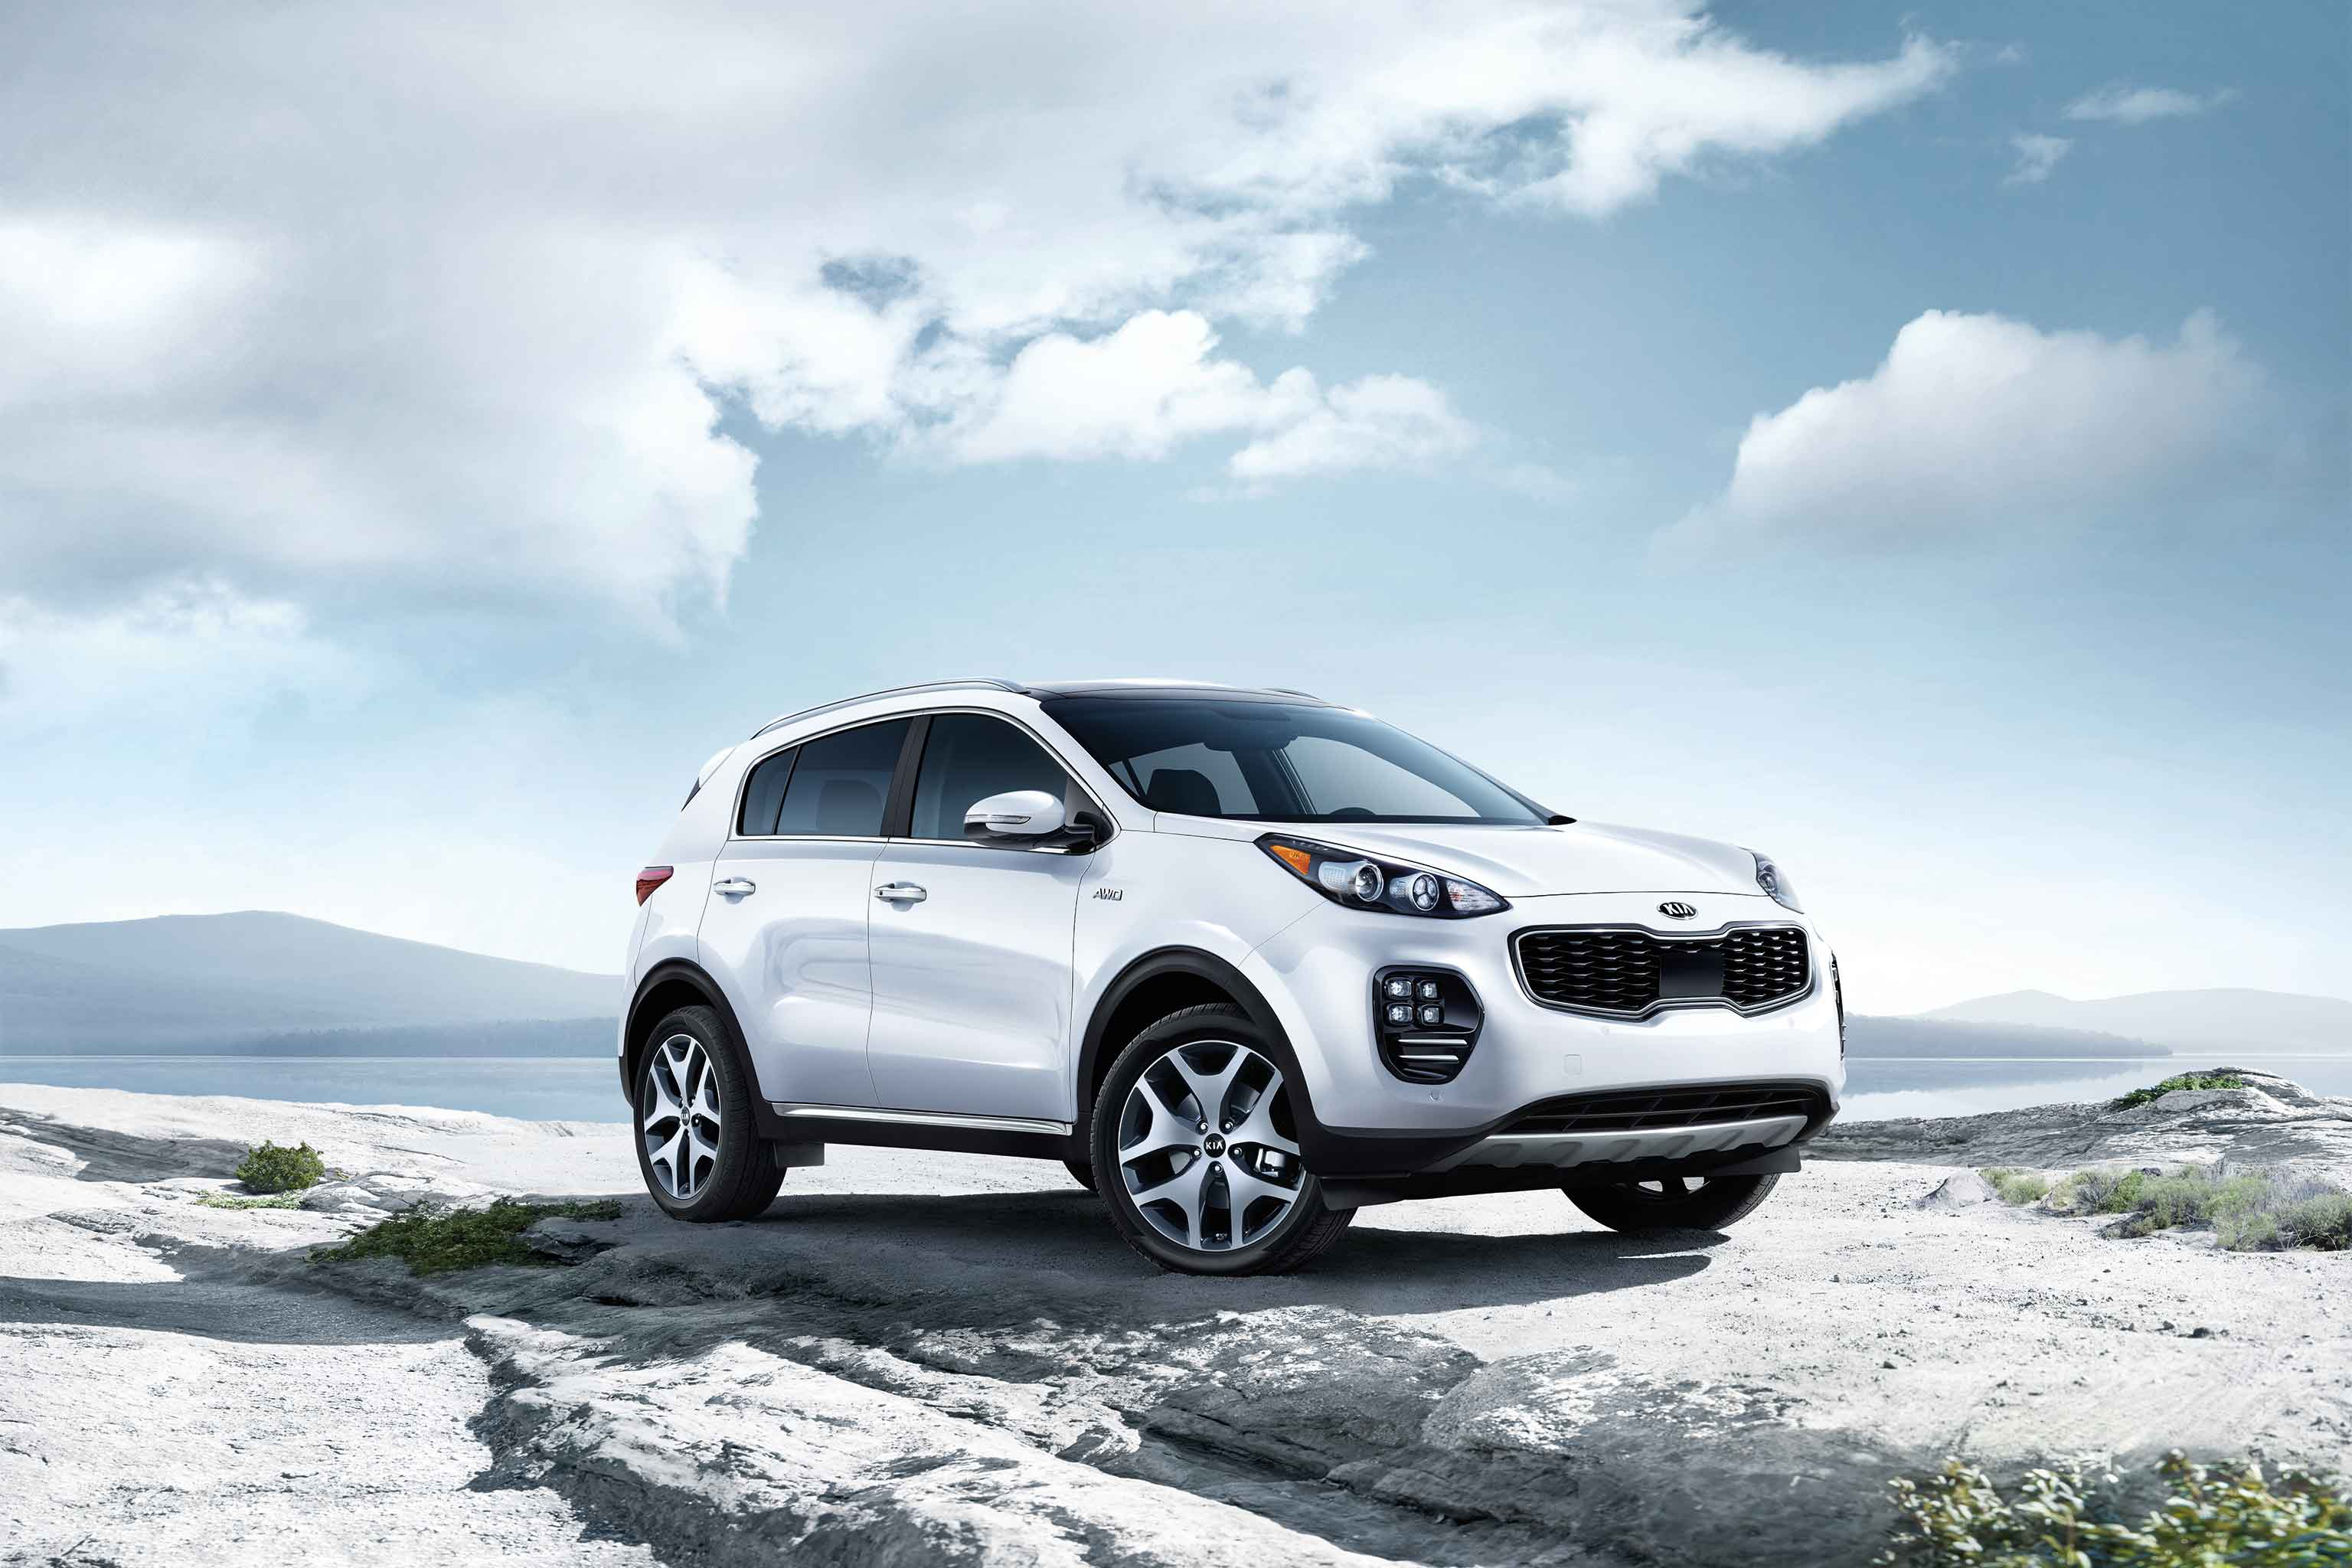 2019 Kia Sportage for Sale near Universal City, TX